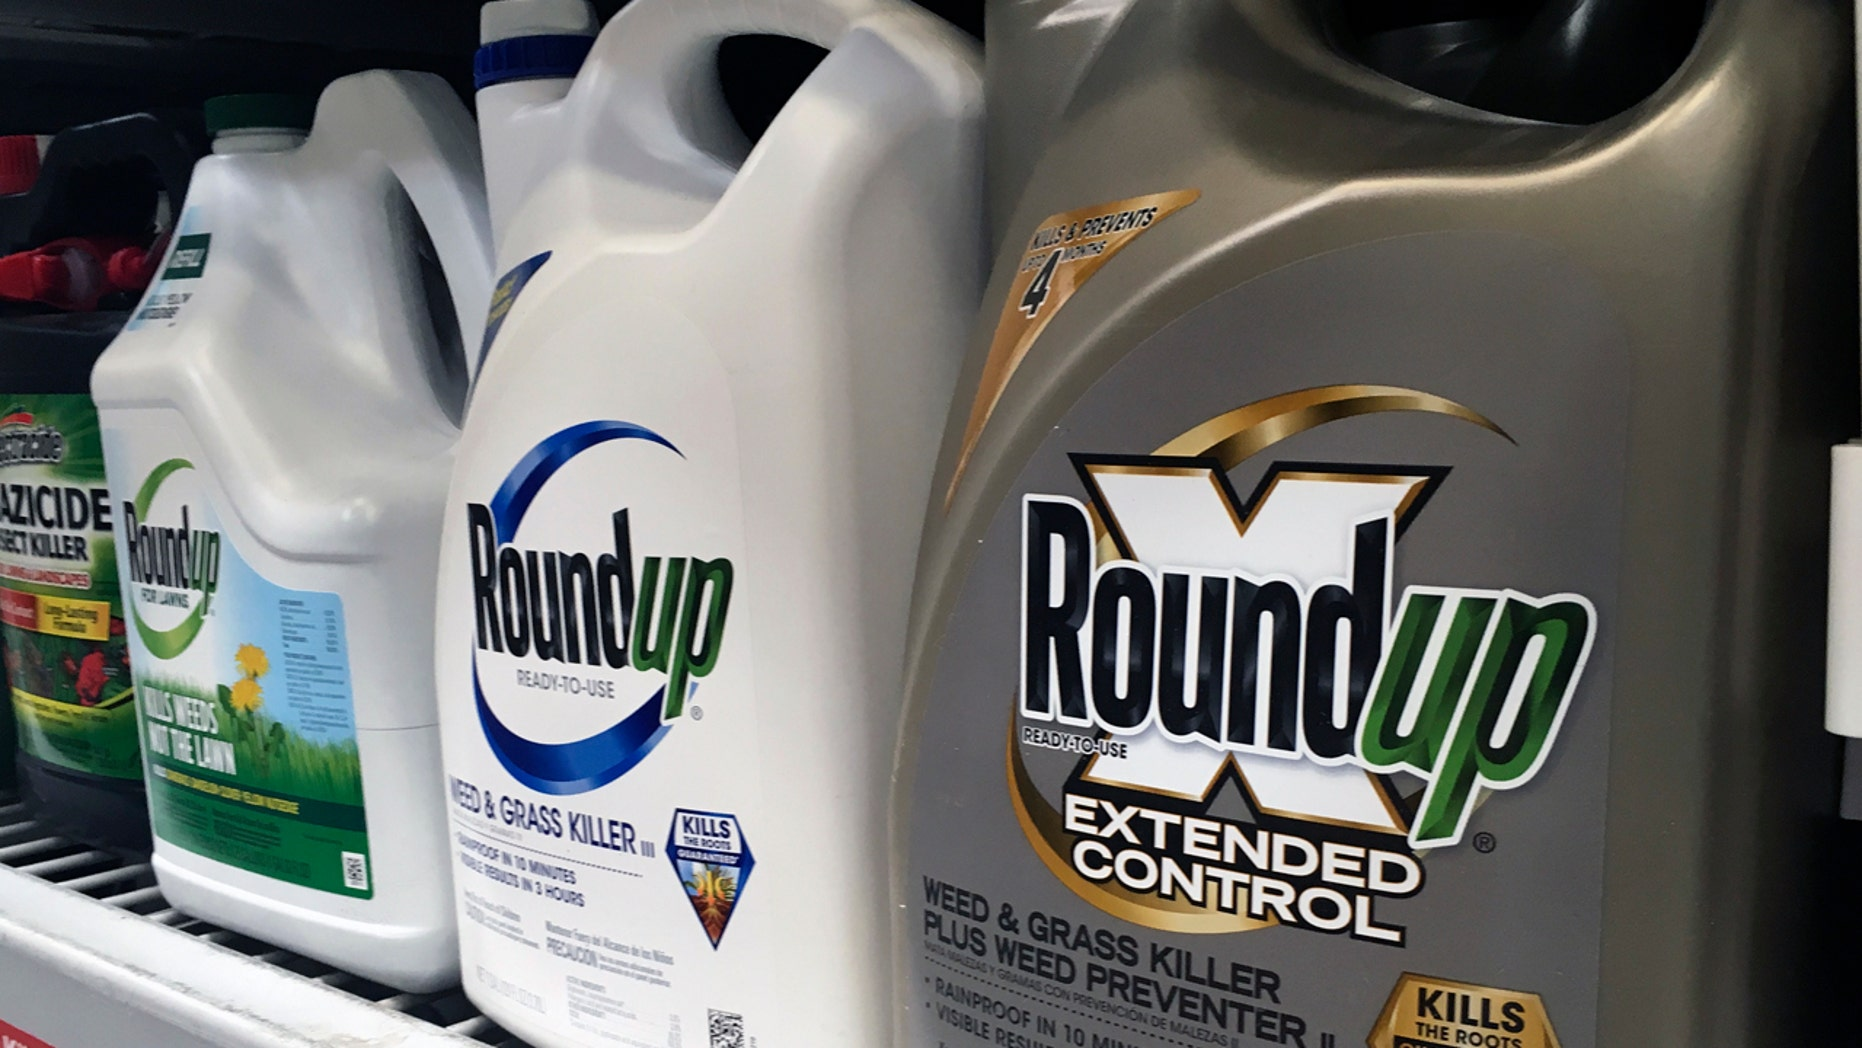 FILE - In this Sunday, February 24, 2019 file picture, containers of Roundup appear on a store shelf in San Francisco. (AP Photo / Haven Daley, File)